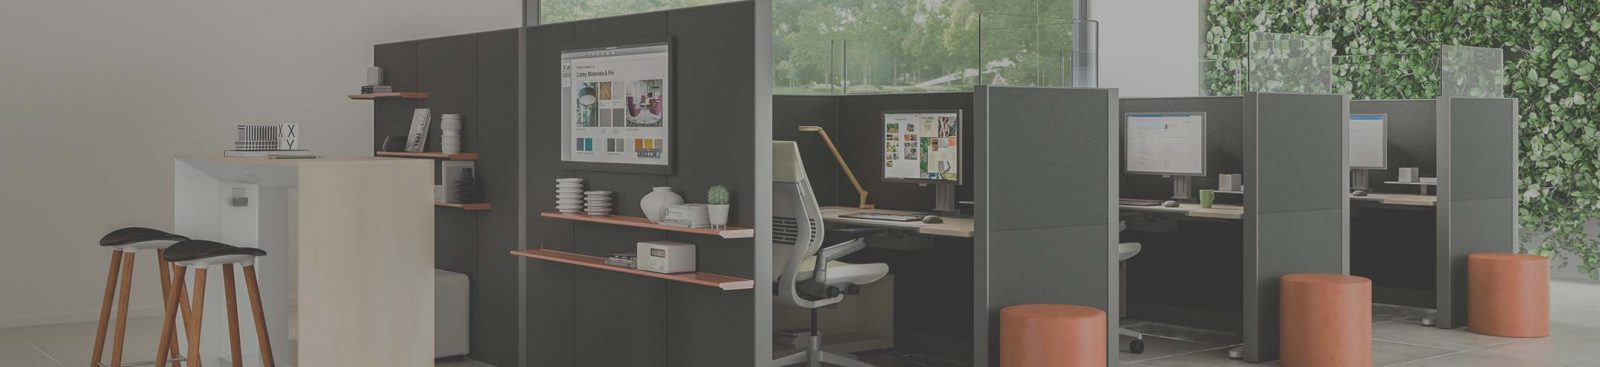 When should you update the look of your office? image